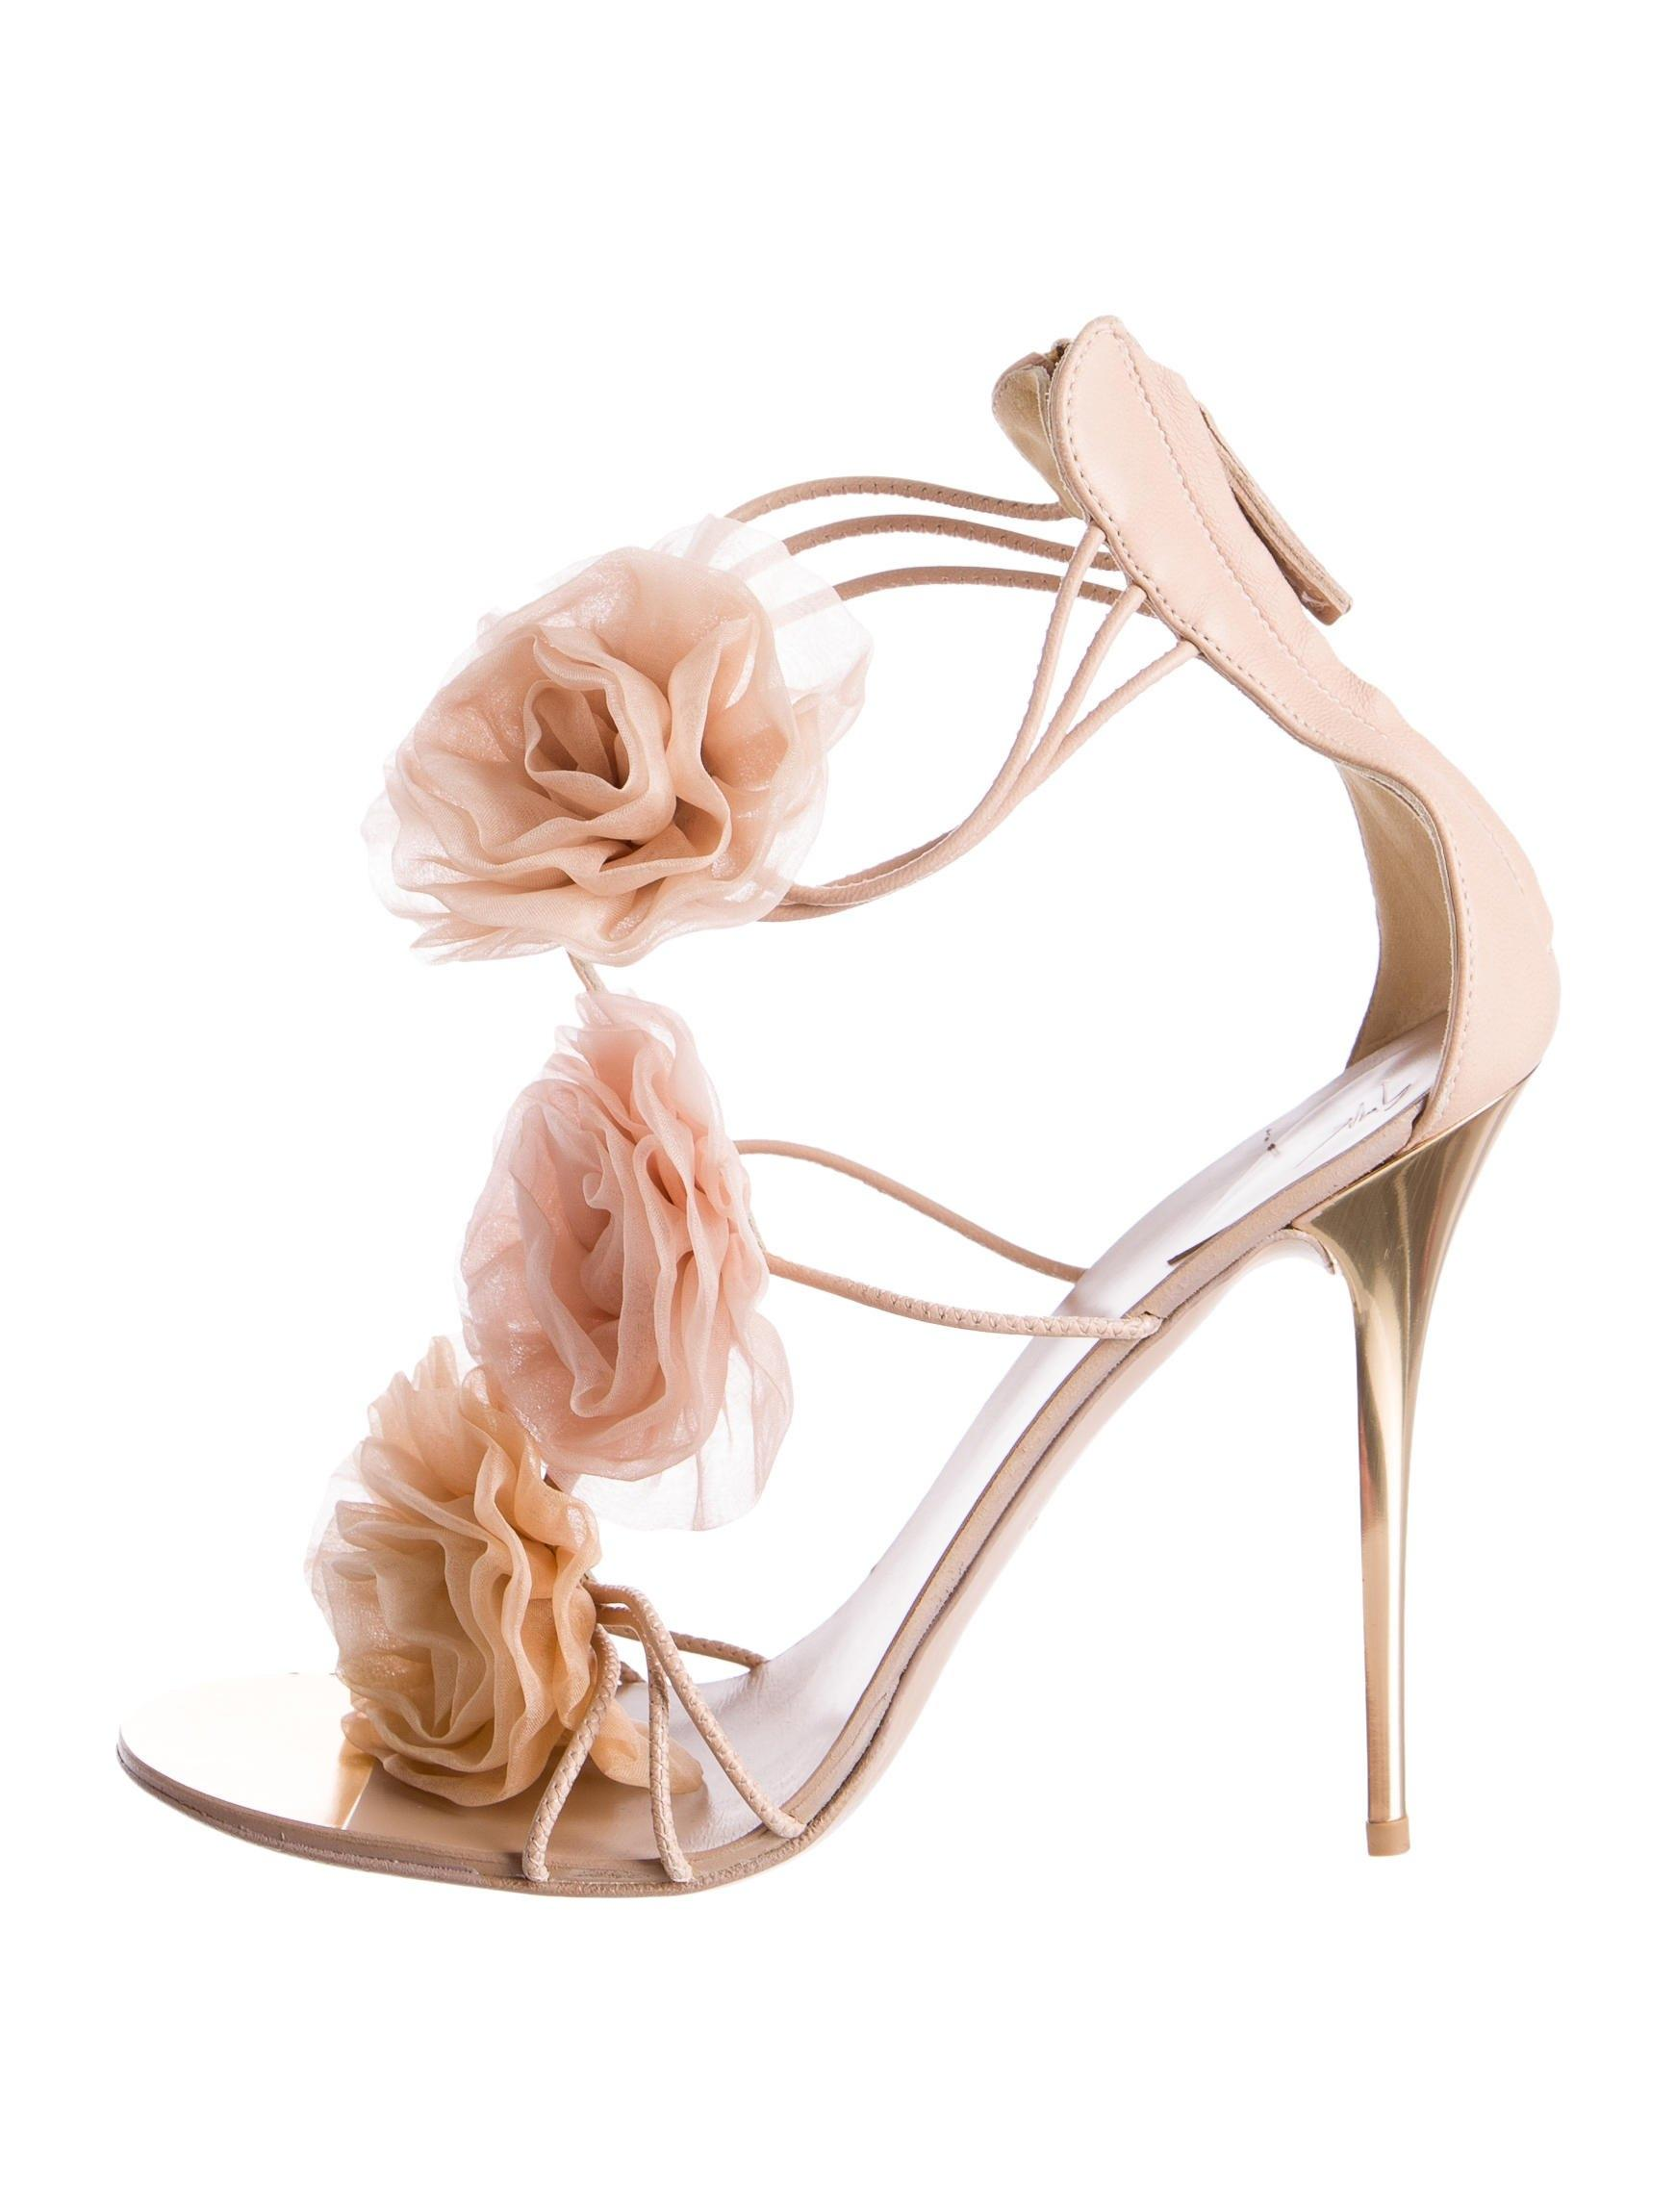 Giuseppe Zanotti Floral Multistrap Sandals visit new cheap price 0ut78wJ